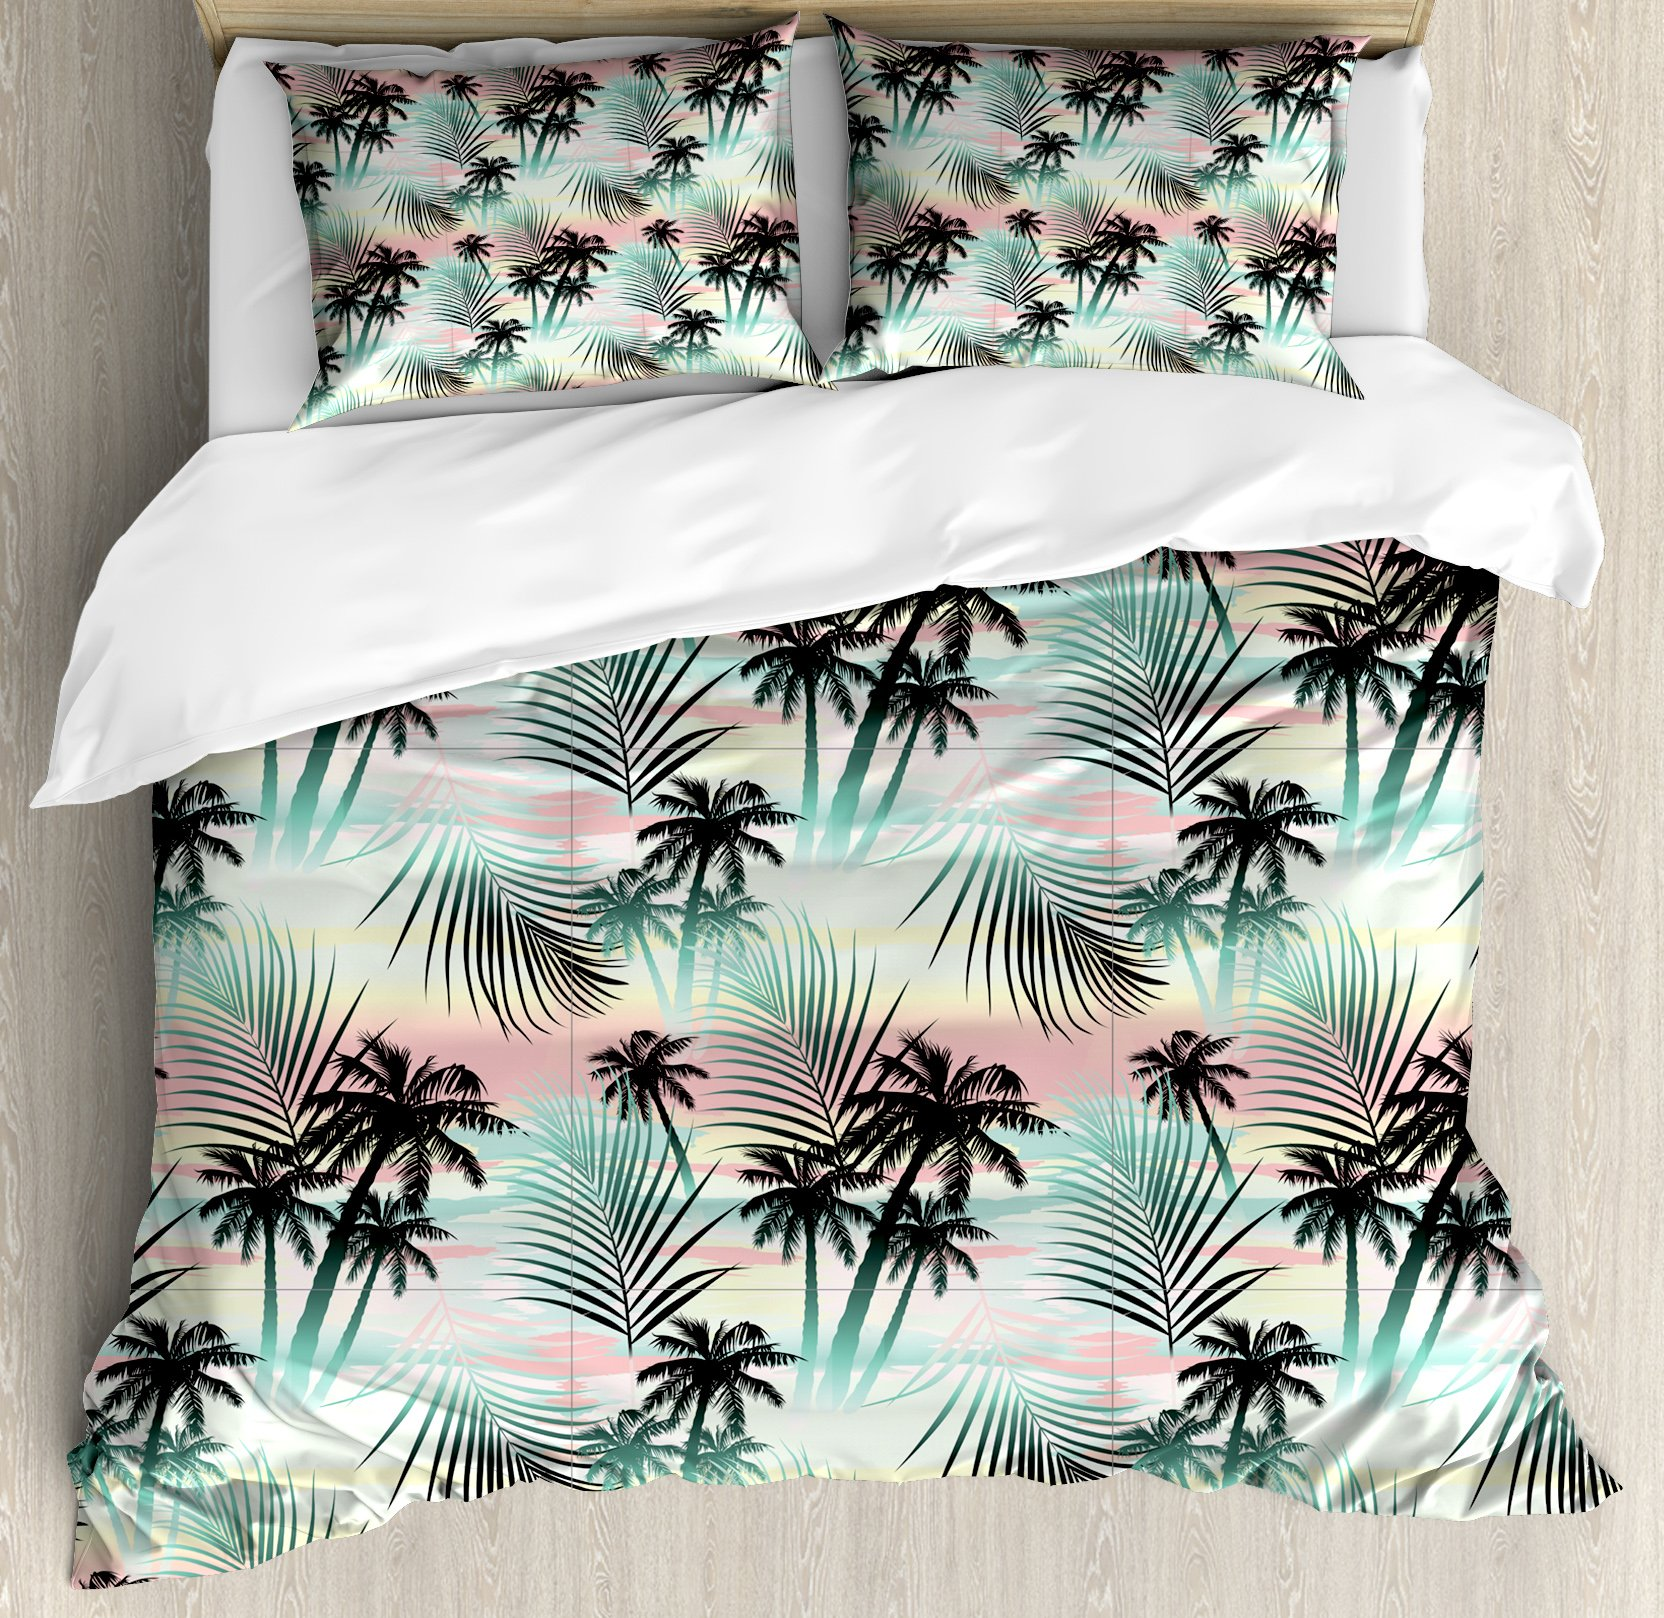 Hawaii Duvet Cover Set Queen Size by Ambesonne, Summer Season Palm Trees and Exotic Fern Leaves with Abstract Colorful Background, Decorative 3 Piece Bedding Set with 2 Pillow Shams, Multicolor